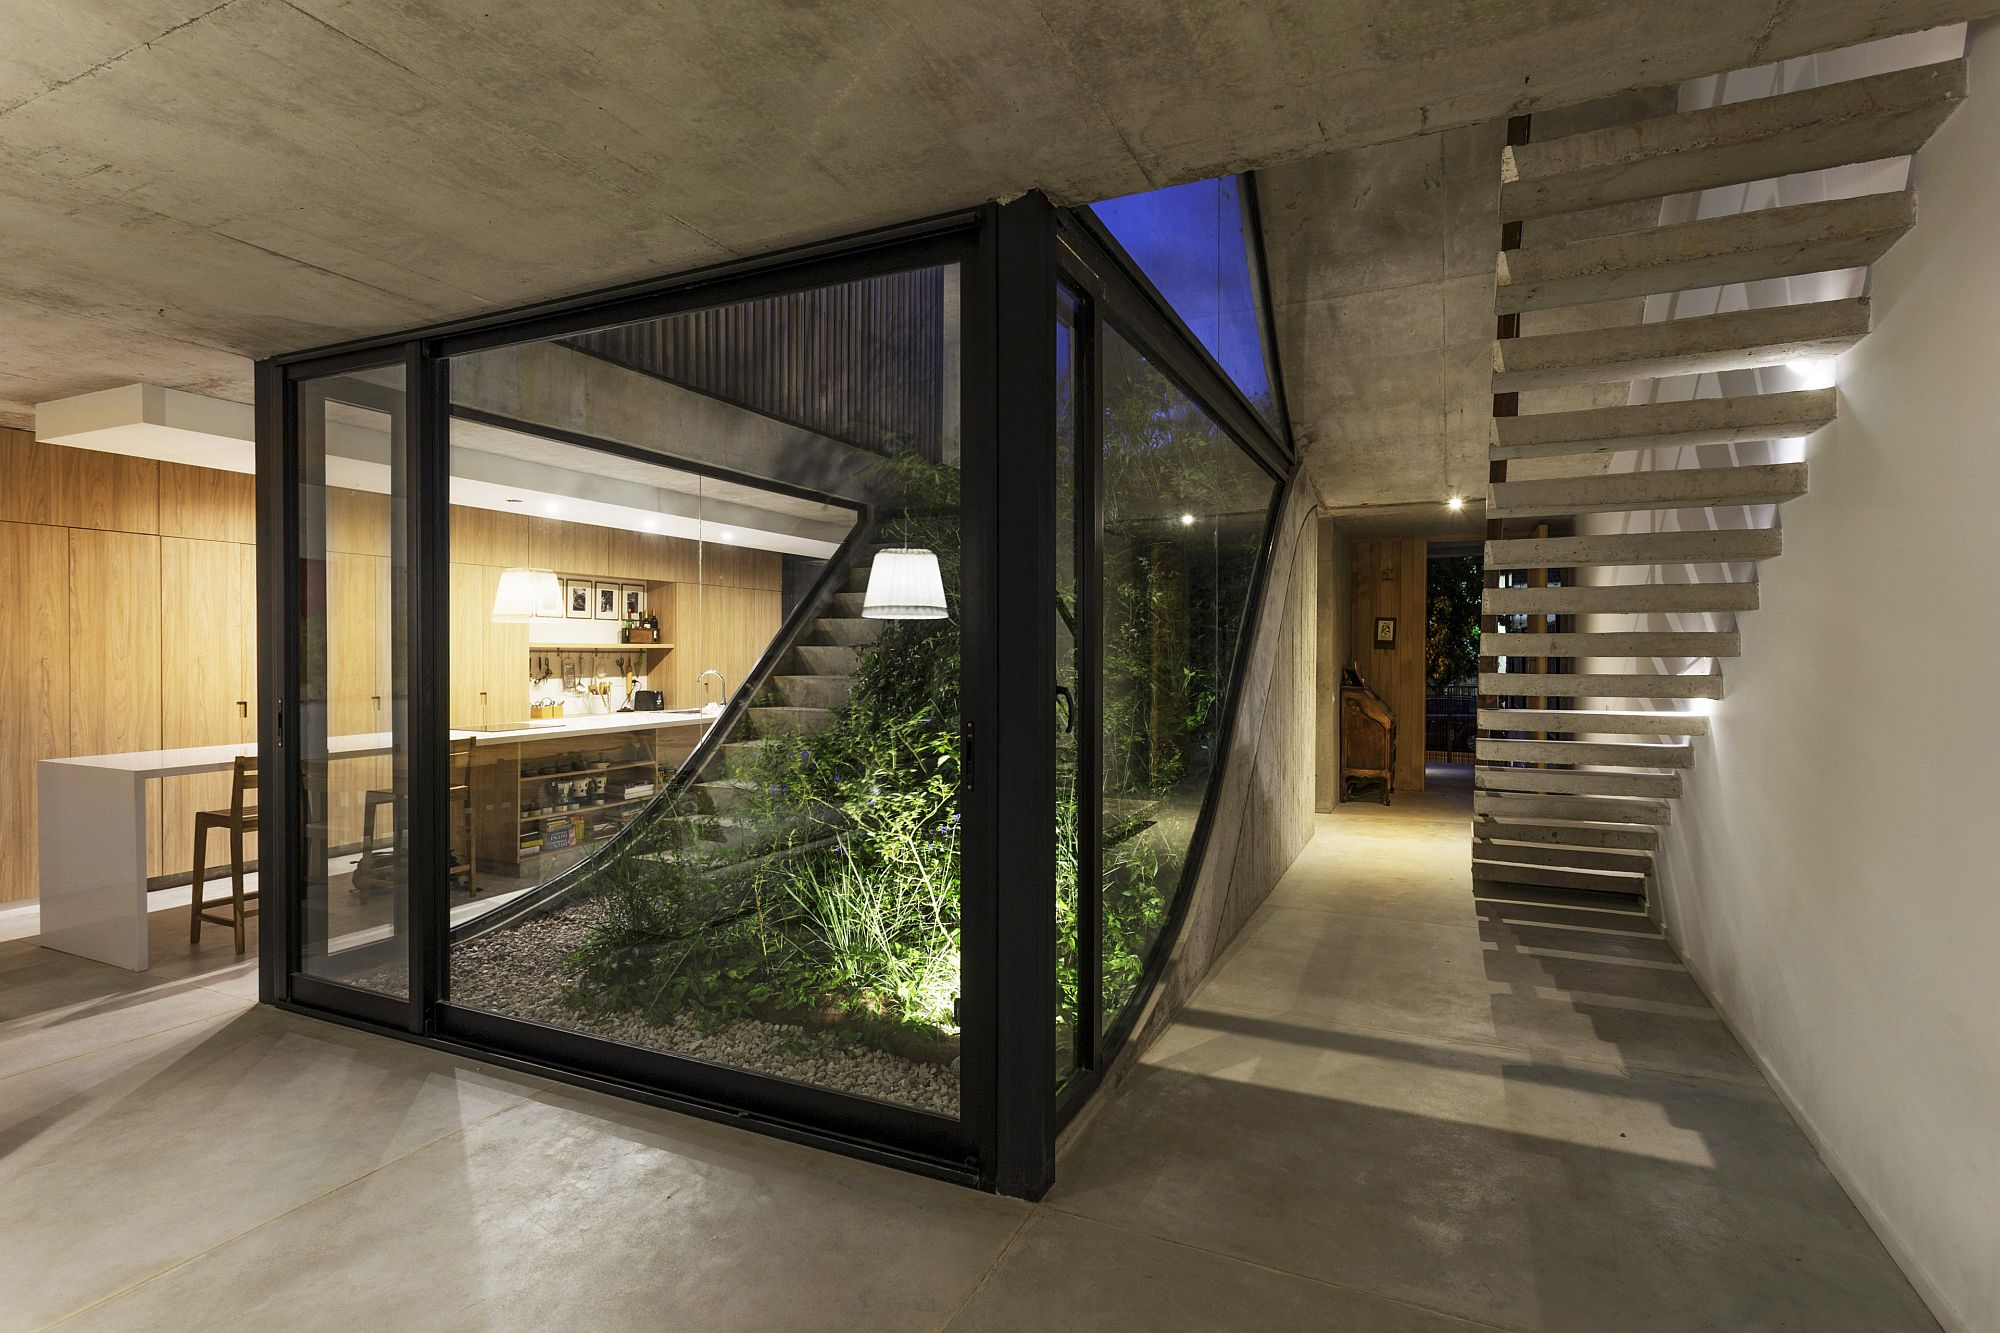 Sloped gardens also become a part of the visual indoors